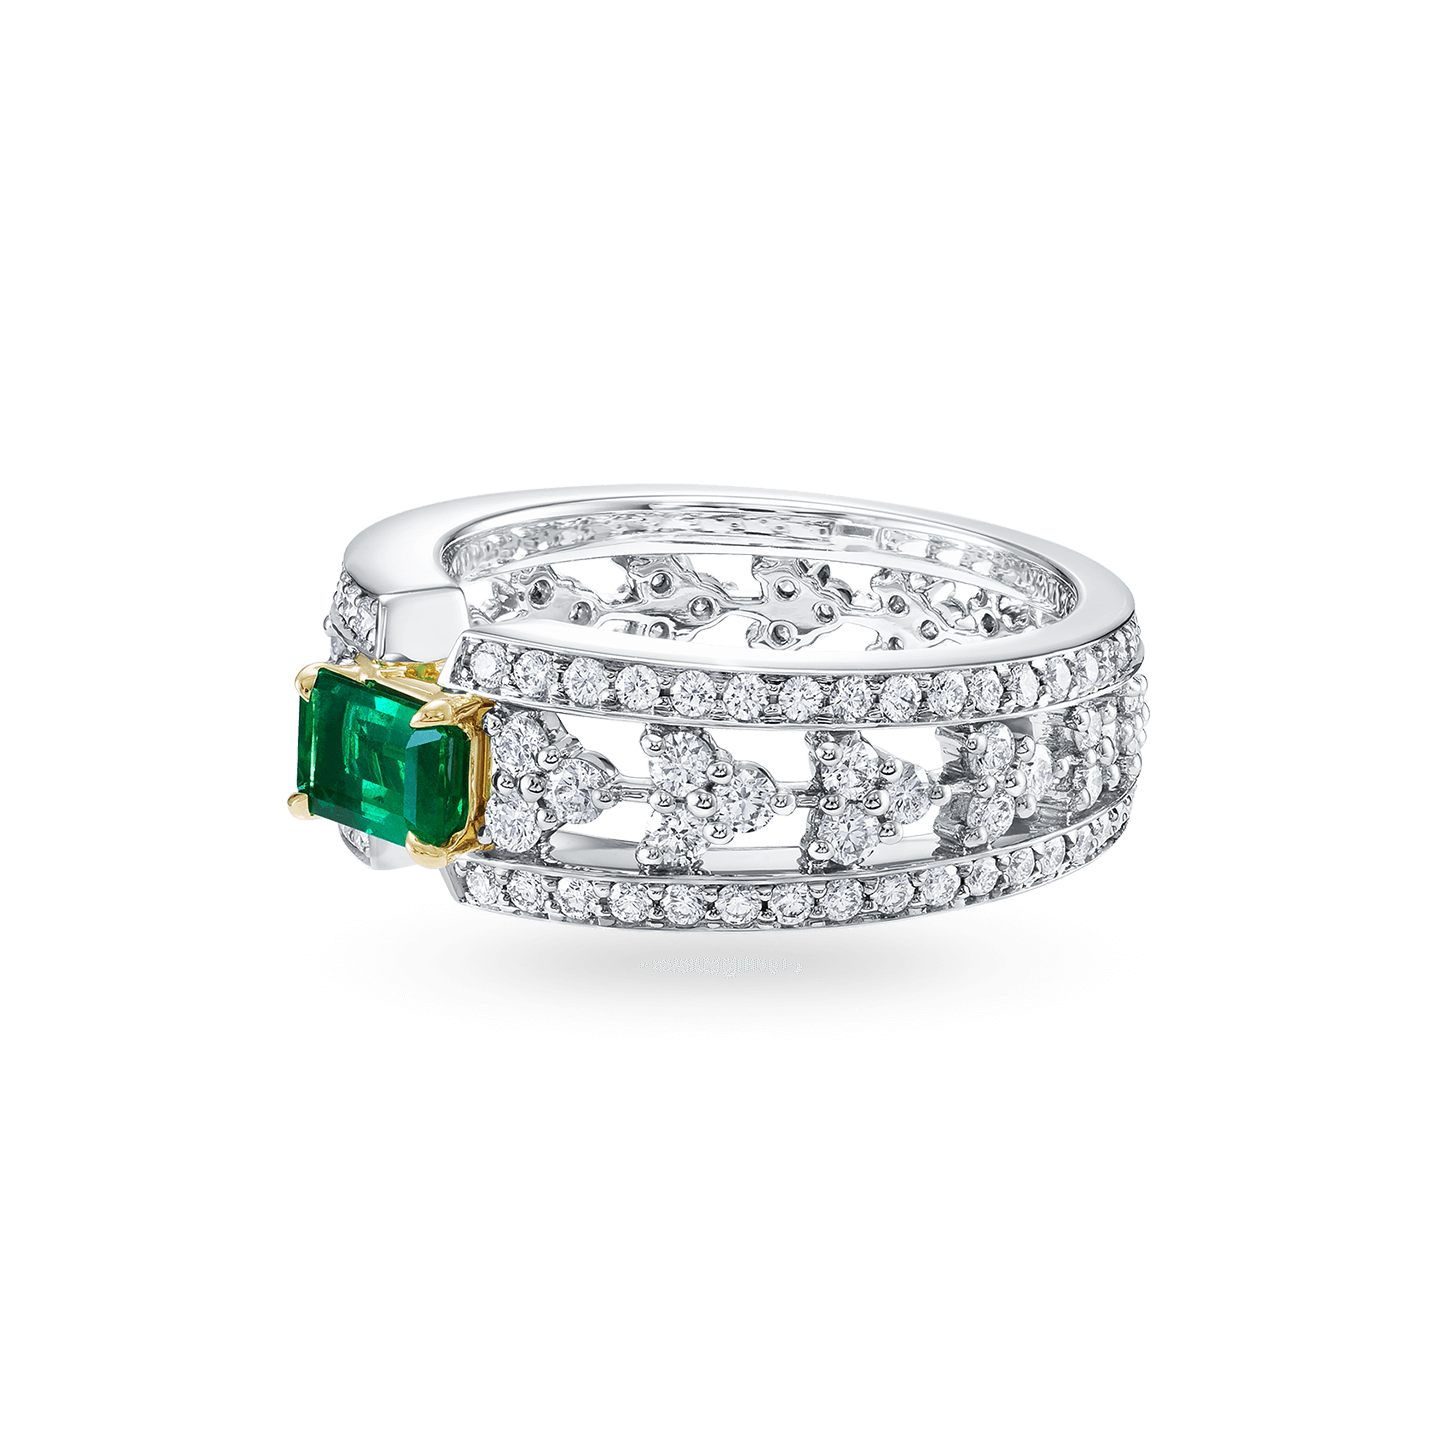 Emerald and Diamond Ring, Product Image 2